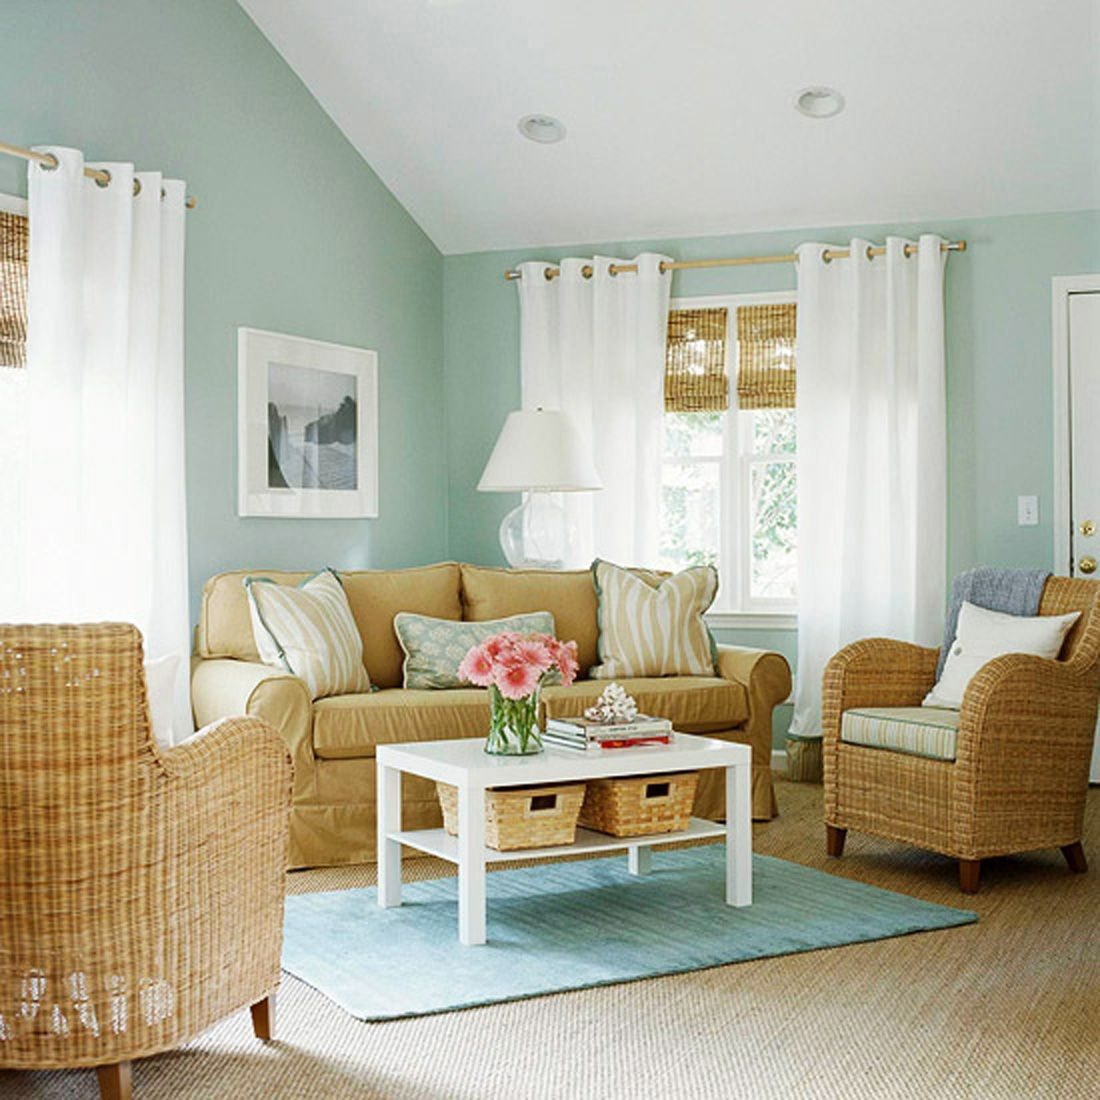 Light Blue And Green Living Room sky blue and white scheme color ideas for living room decorating